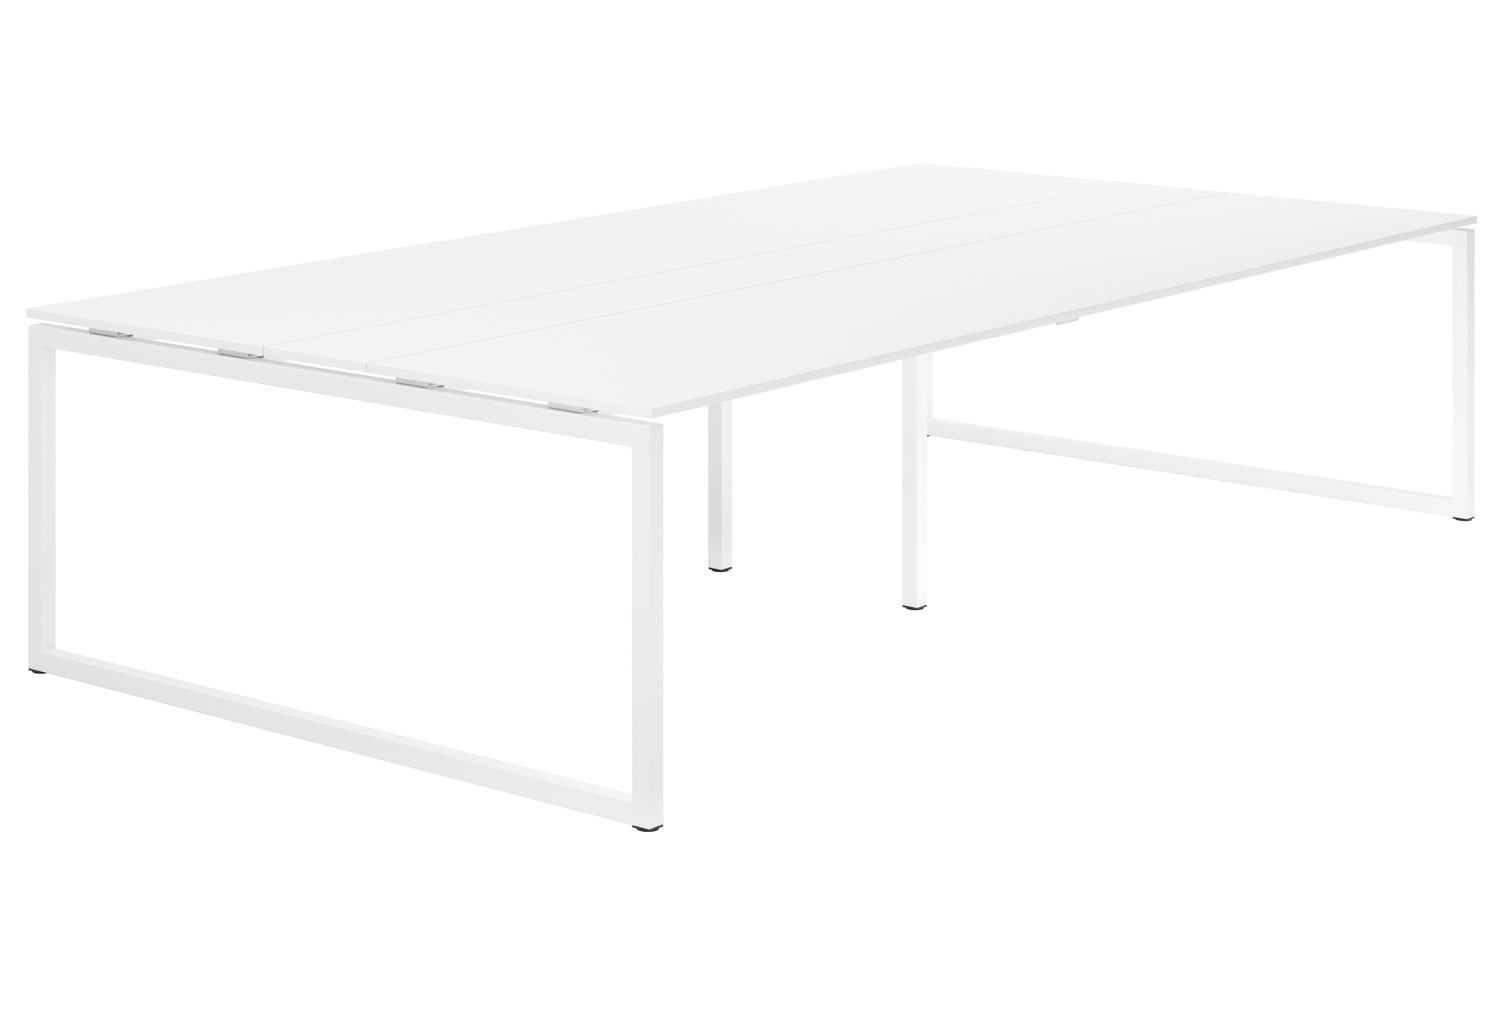 Campos Hooped Leg 10-12 Person Meeting Table (White)